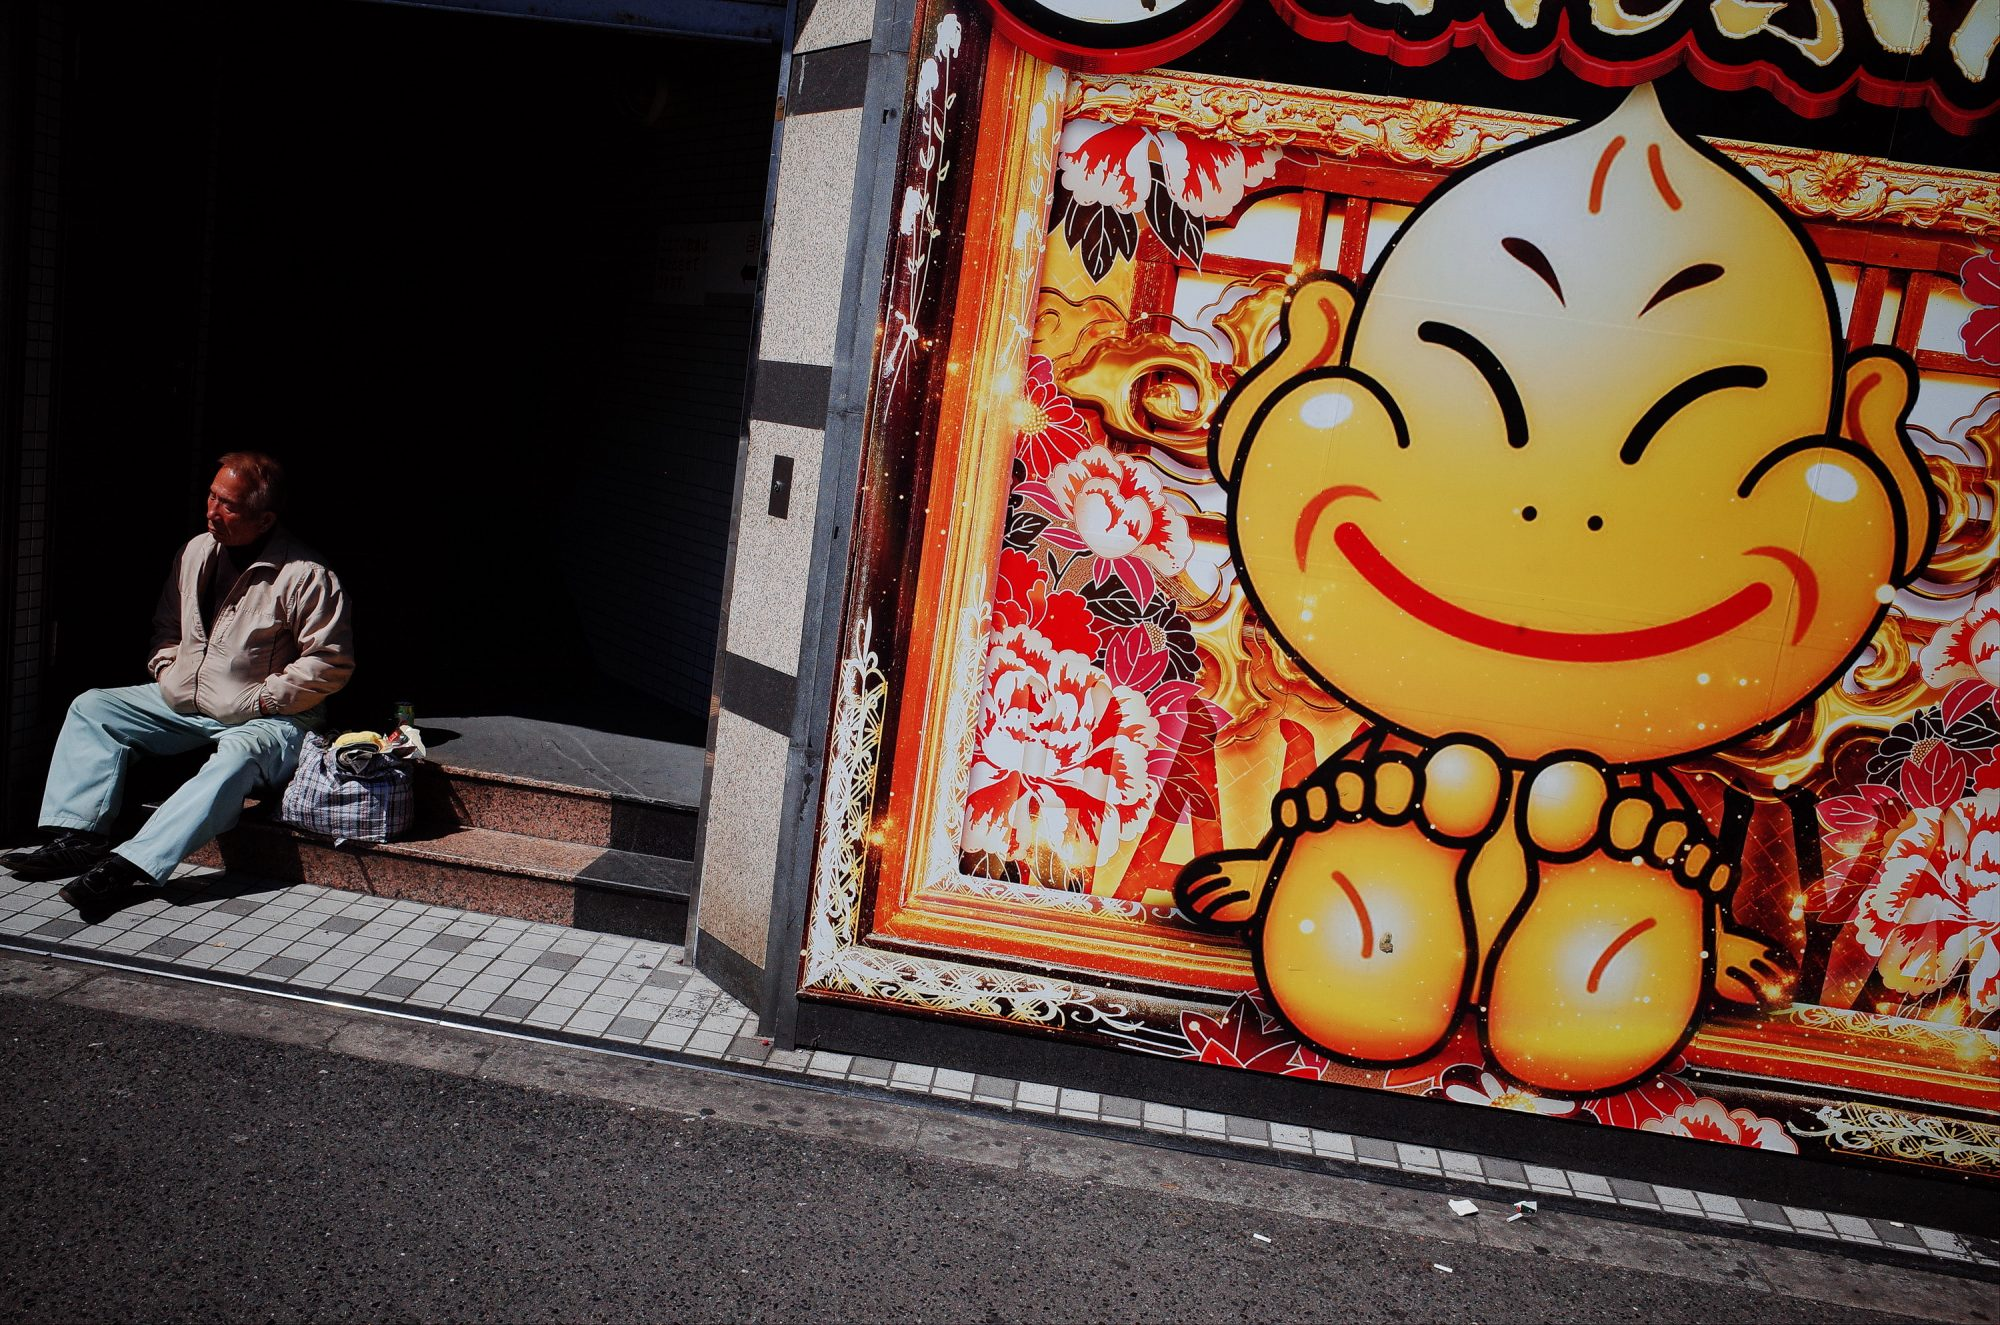 Street scene with man in front of Pachinko. Osaka, 2018